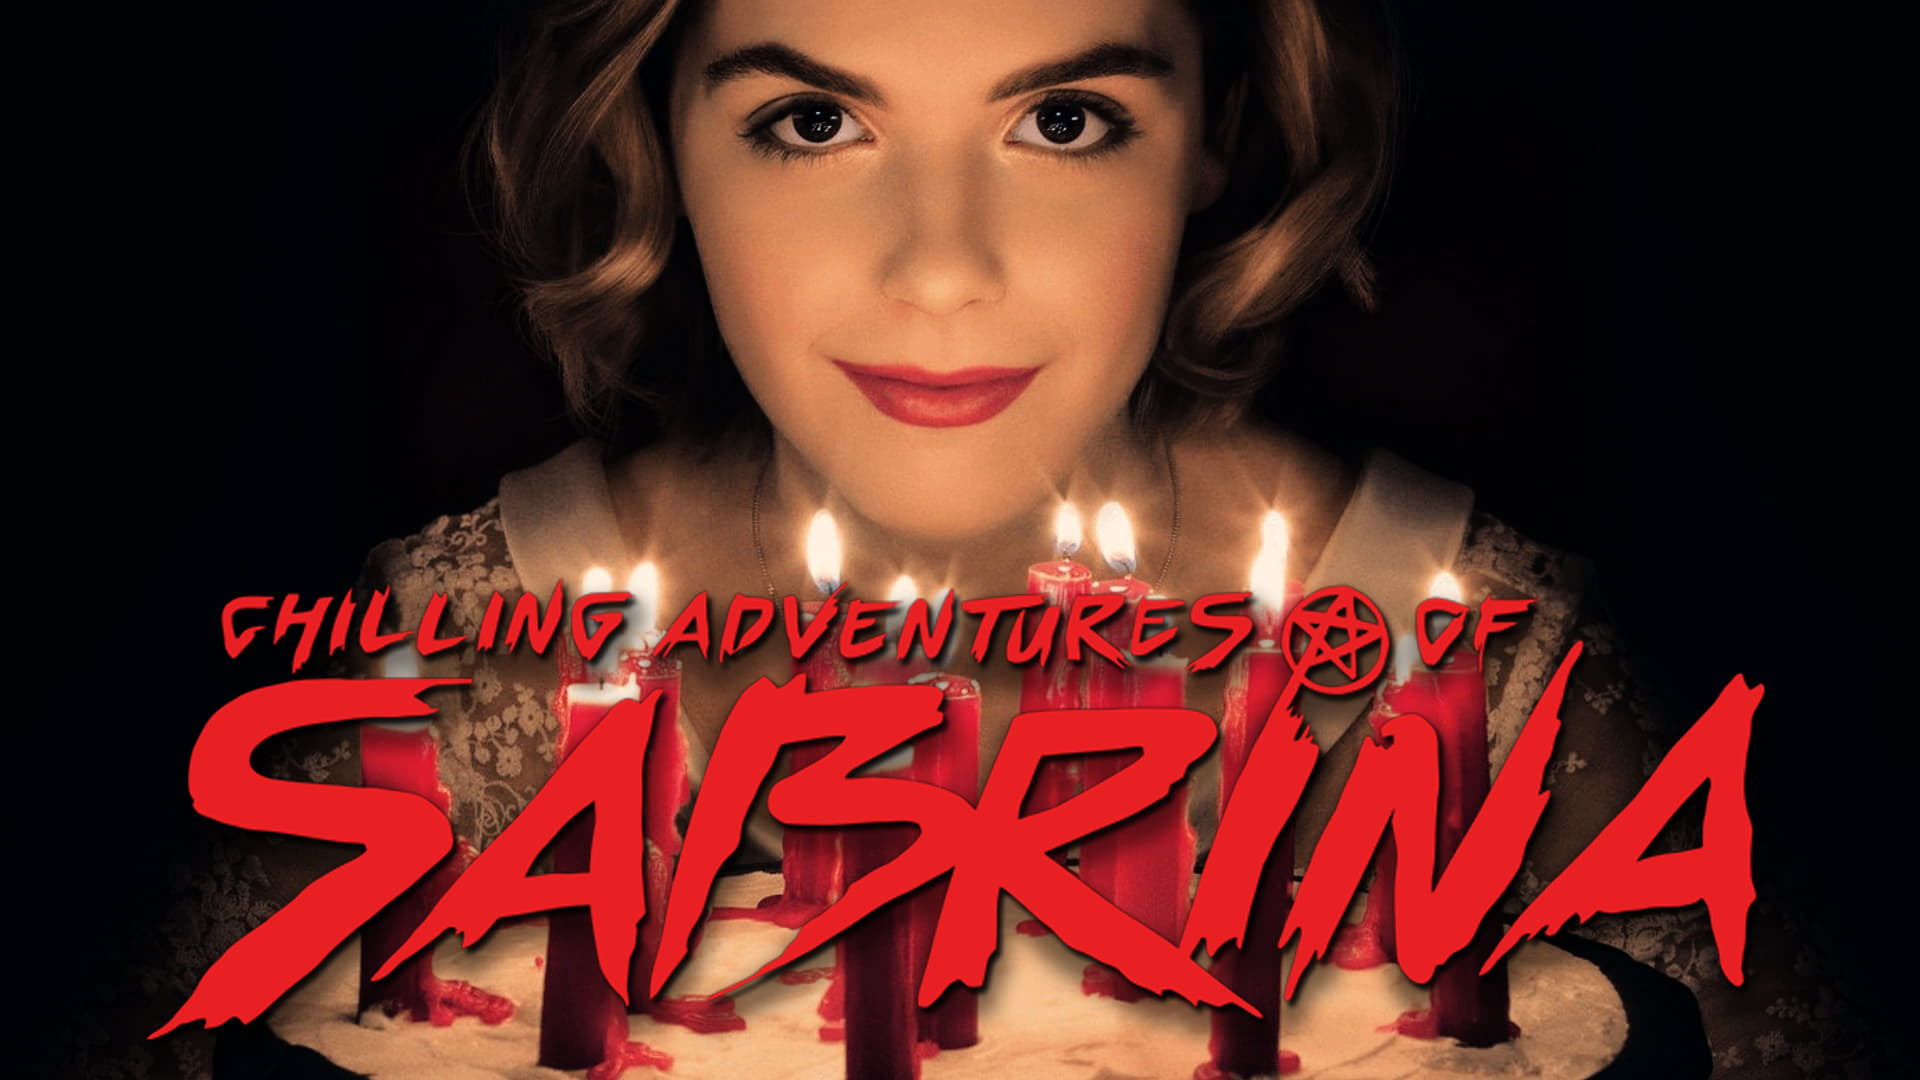 Watch Chilling Adventures Of Sabrina Hd Free Tv Show